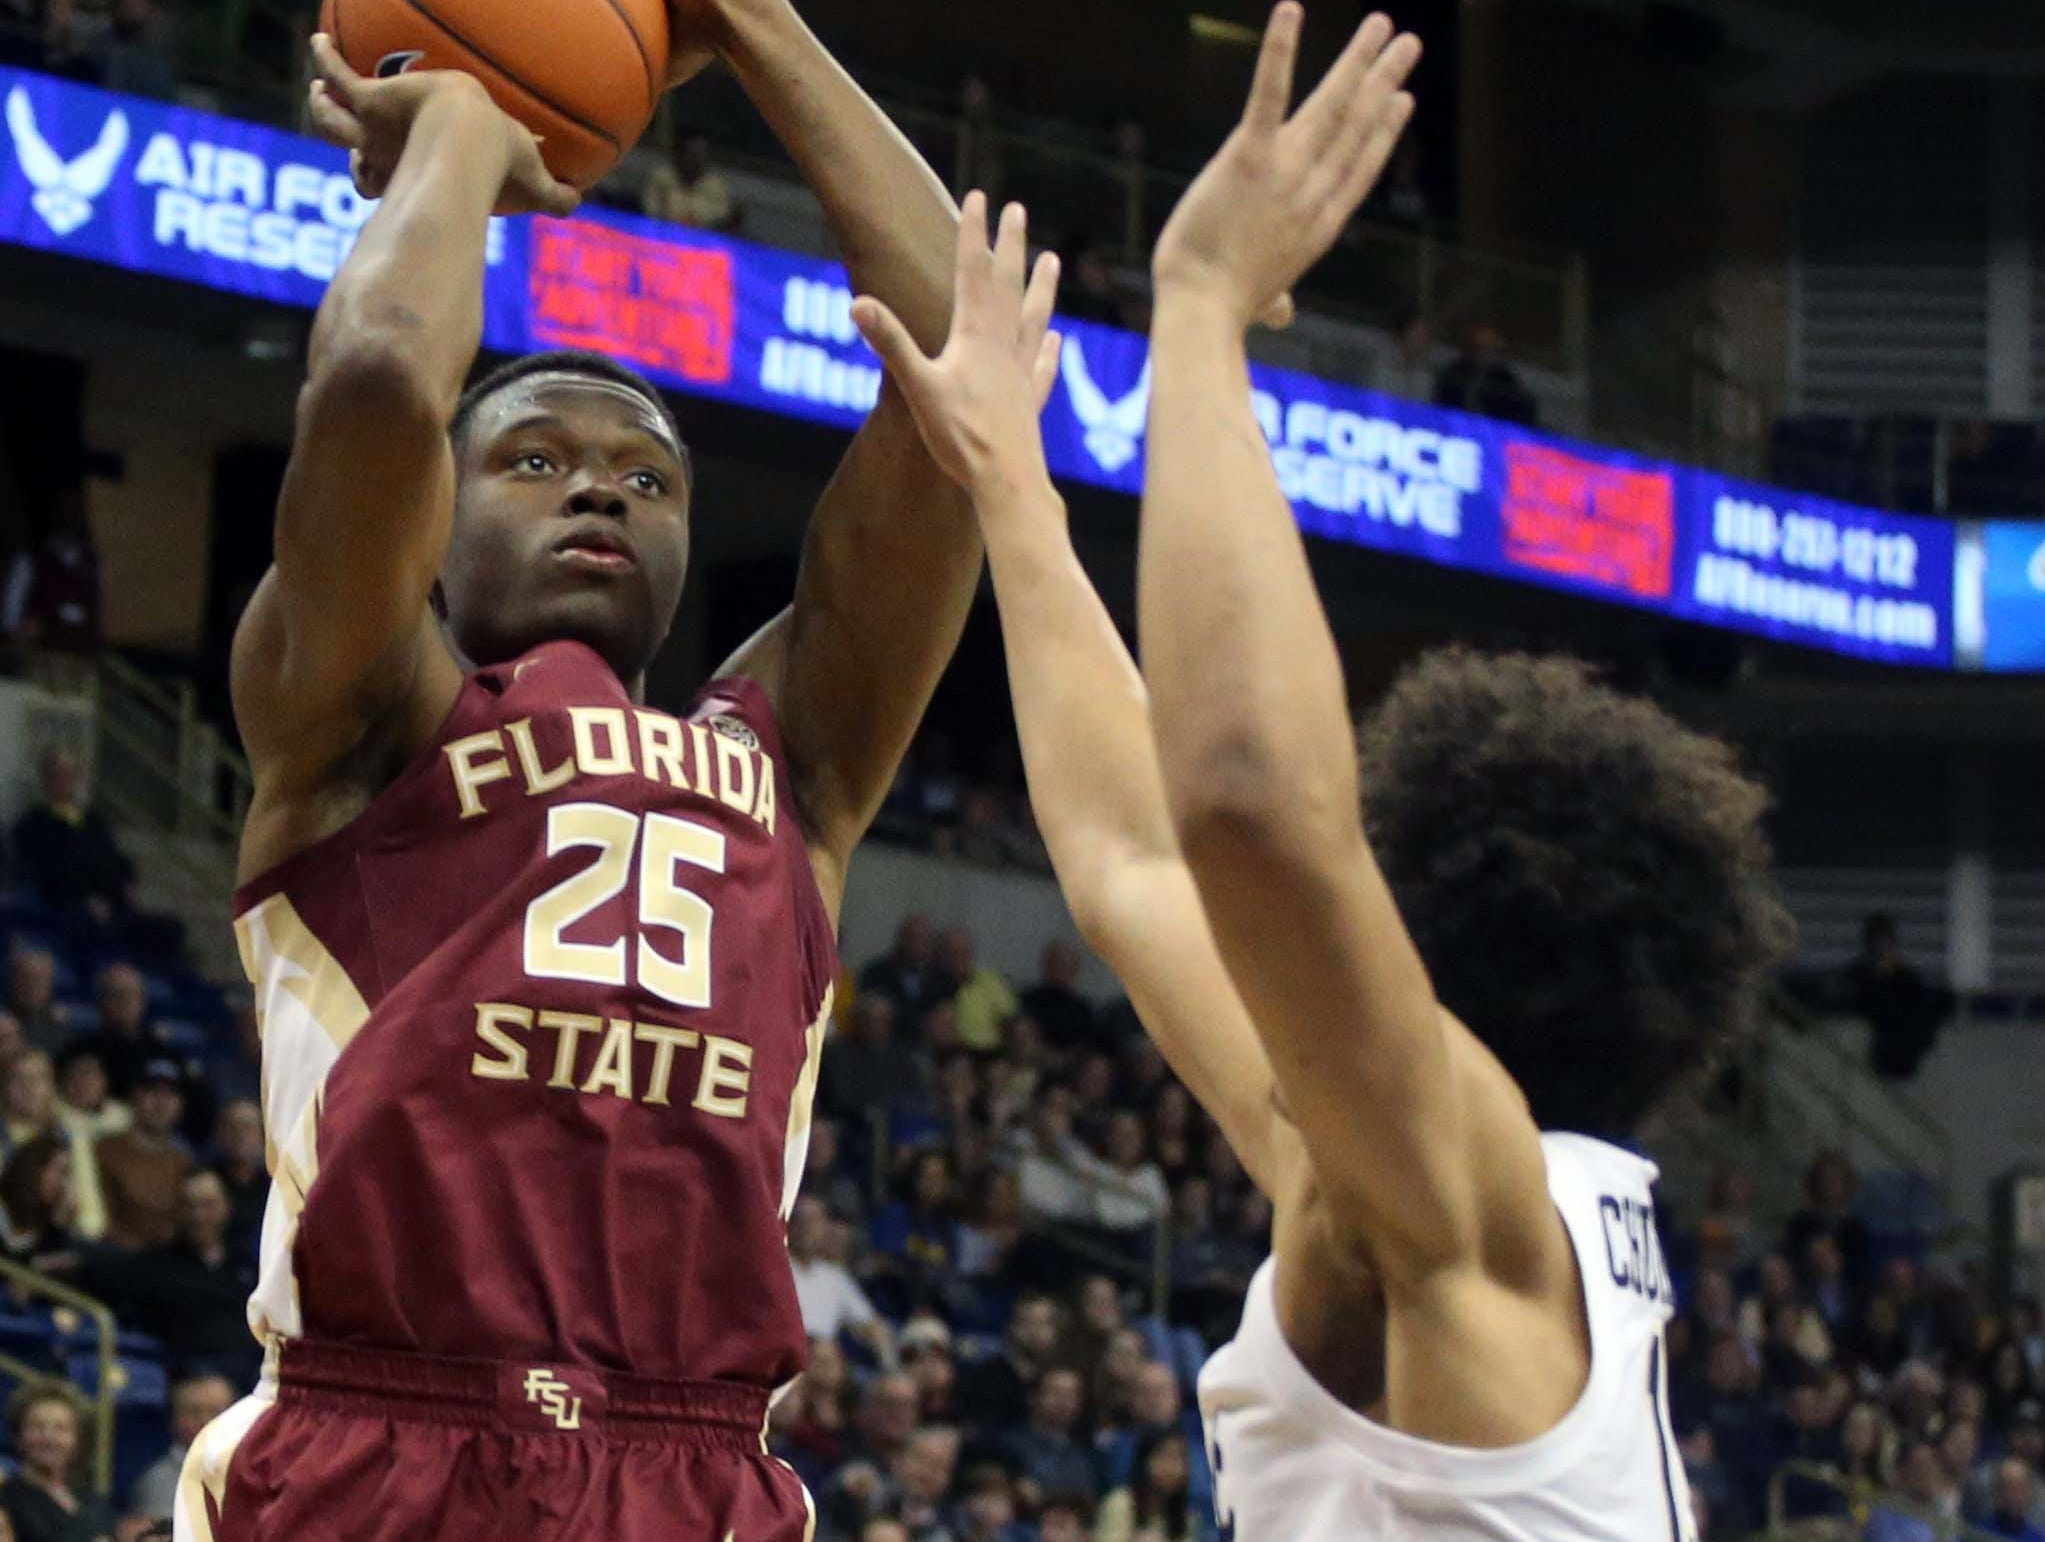 Jan 14, 2019; Pittsburgh, PA, USA; Florida State Seminoles forward Mfiondu Kabengele (25) shoots against Pittsburgh Panthers forward Kene Chukwuka (right) during the first half at the Petersen Events Center. Mandatory Credit: Charles LeClaire-USA TODAY Sports